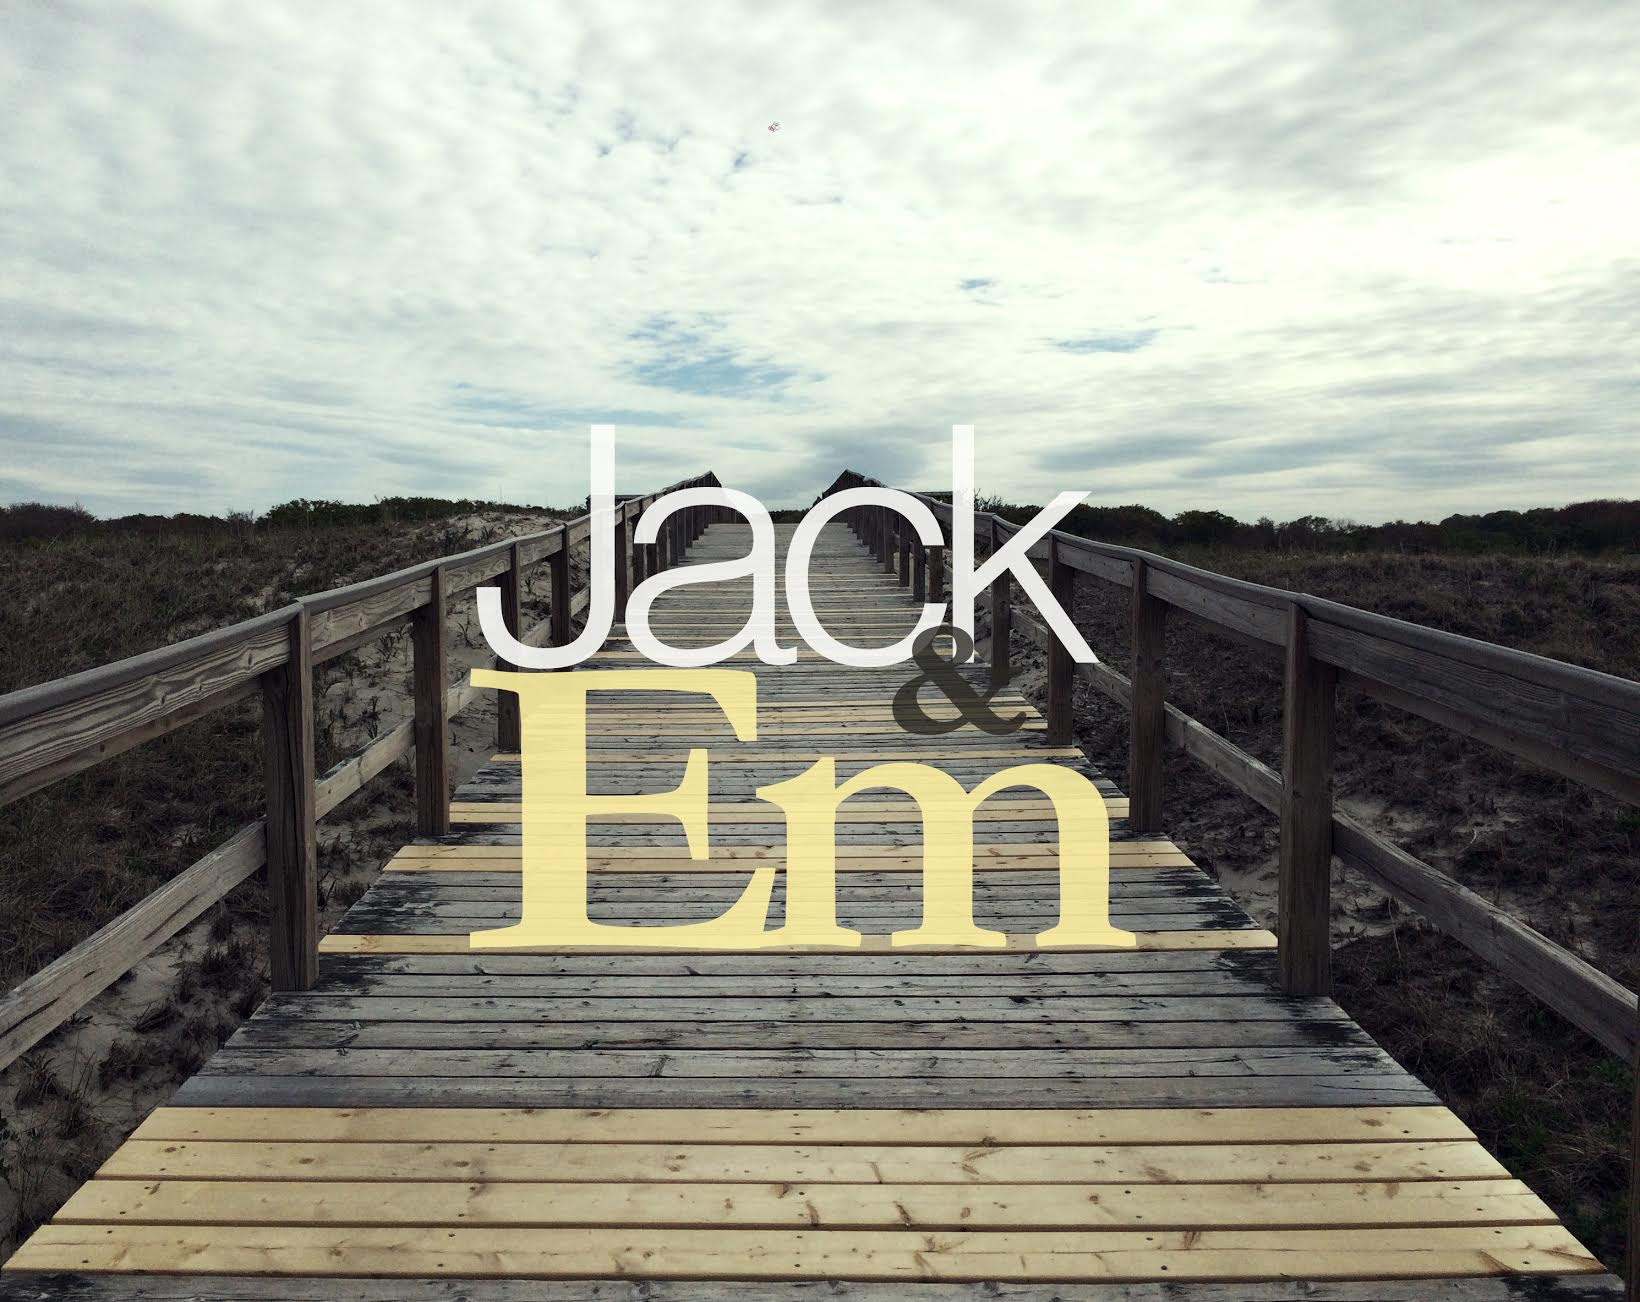 Jack and Em is a love story about loss, about grief, about how to put yourself aside and keep pushing through for the people and in this case family, and child that need you. Find comfort in others, when the instinct may be to push them away.